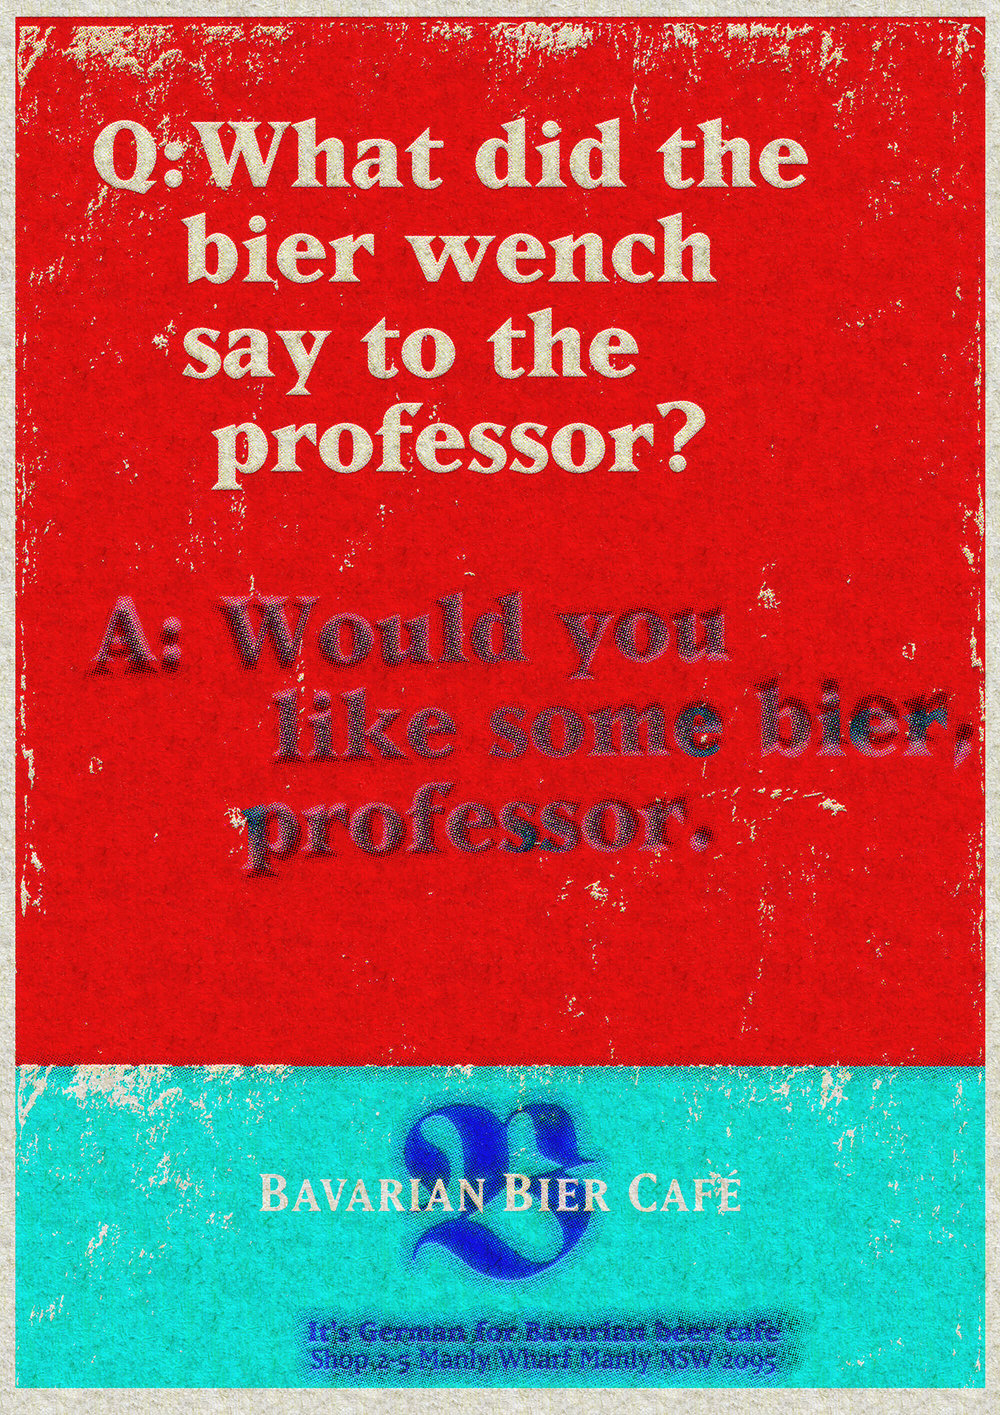 Bavarian Bier Café: print Ad. Q: What did the bier wench say to the professor? A: Hello professor.